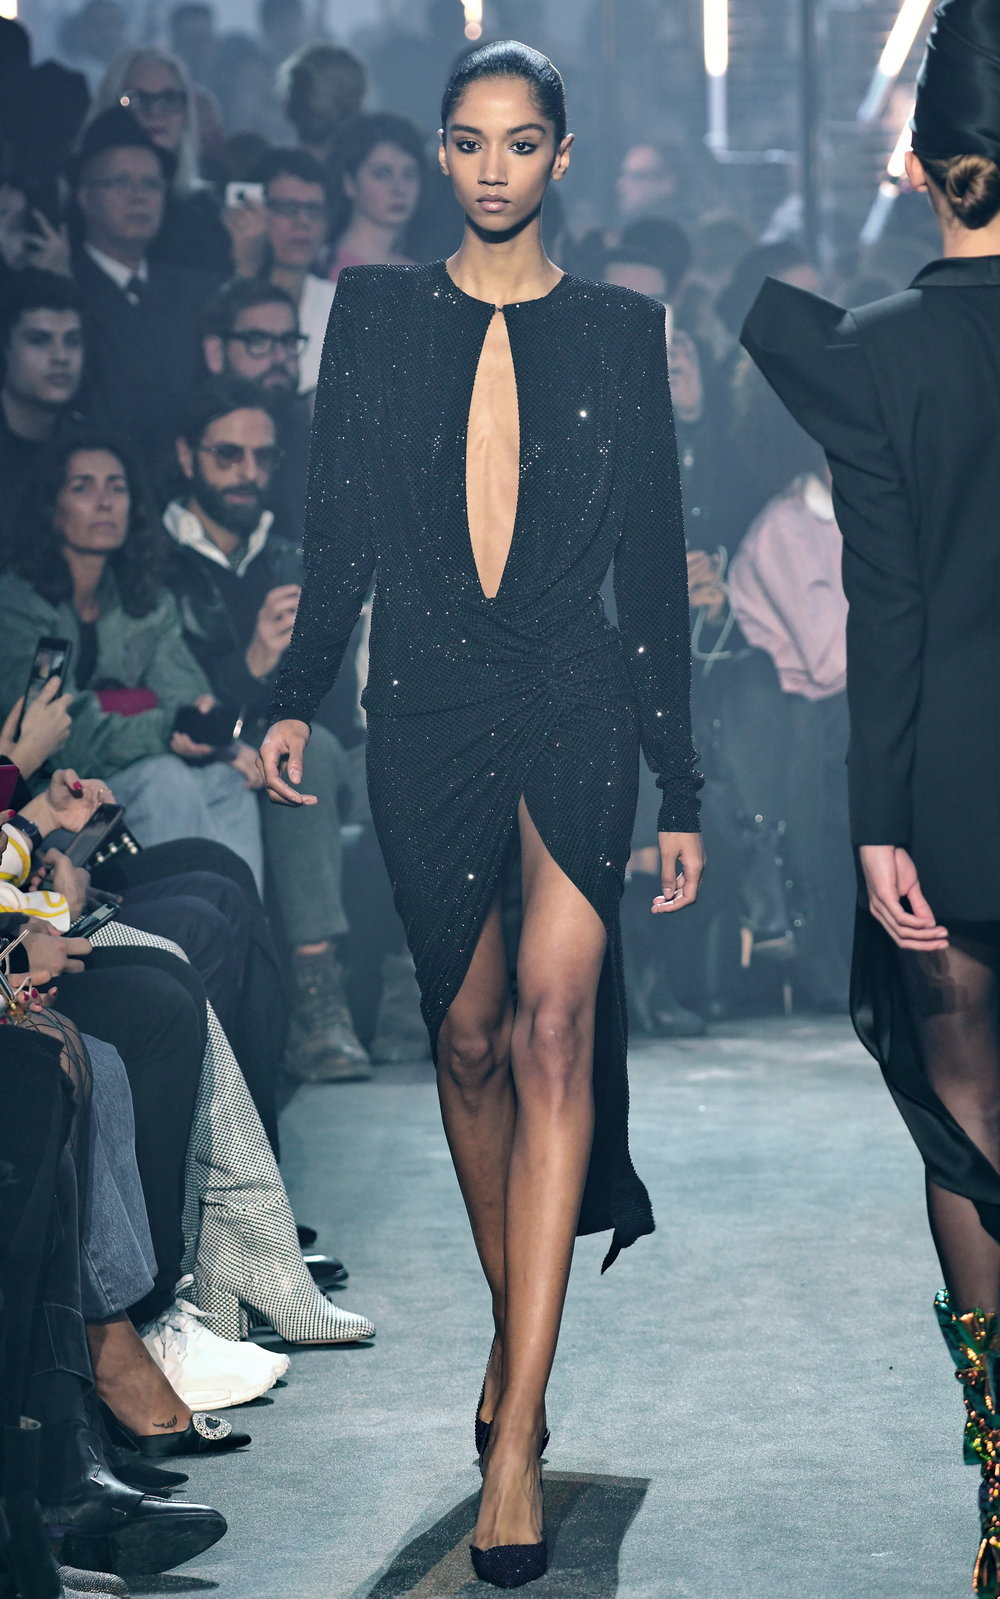 Alexandre Vauthier  Runway - Paris Fashion Week - Haute Couture 4to4u Arthur Koff 42.JPG